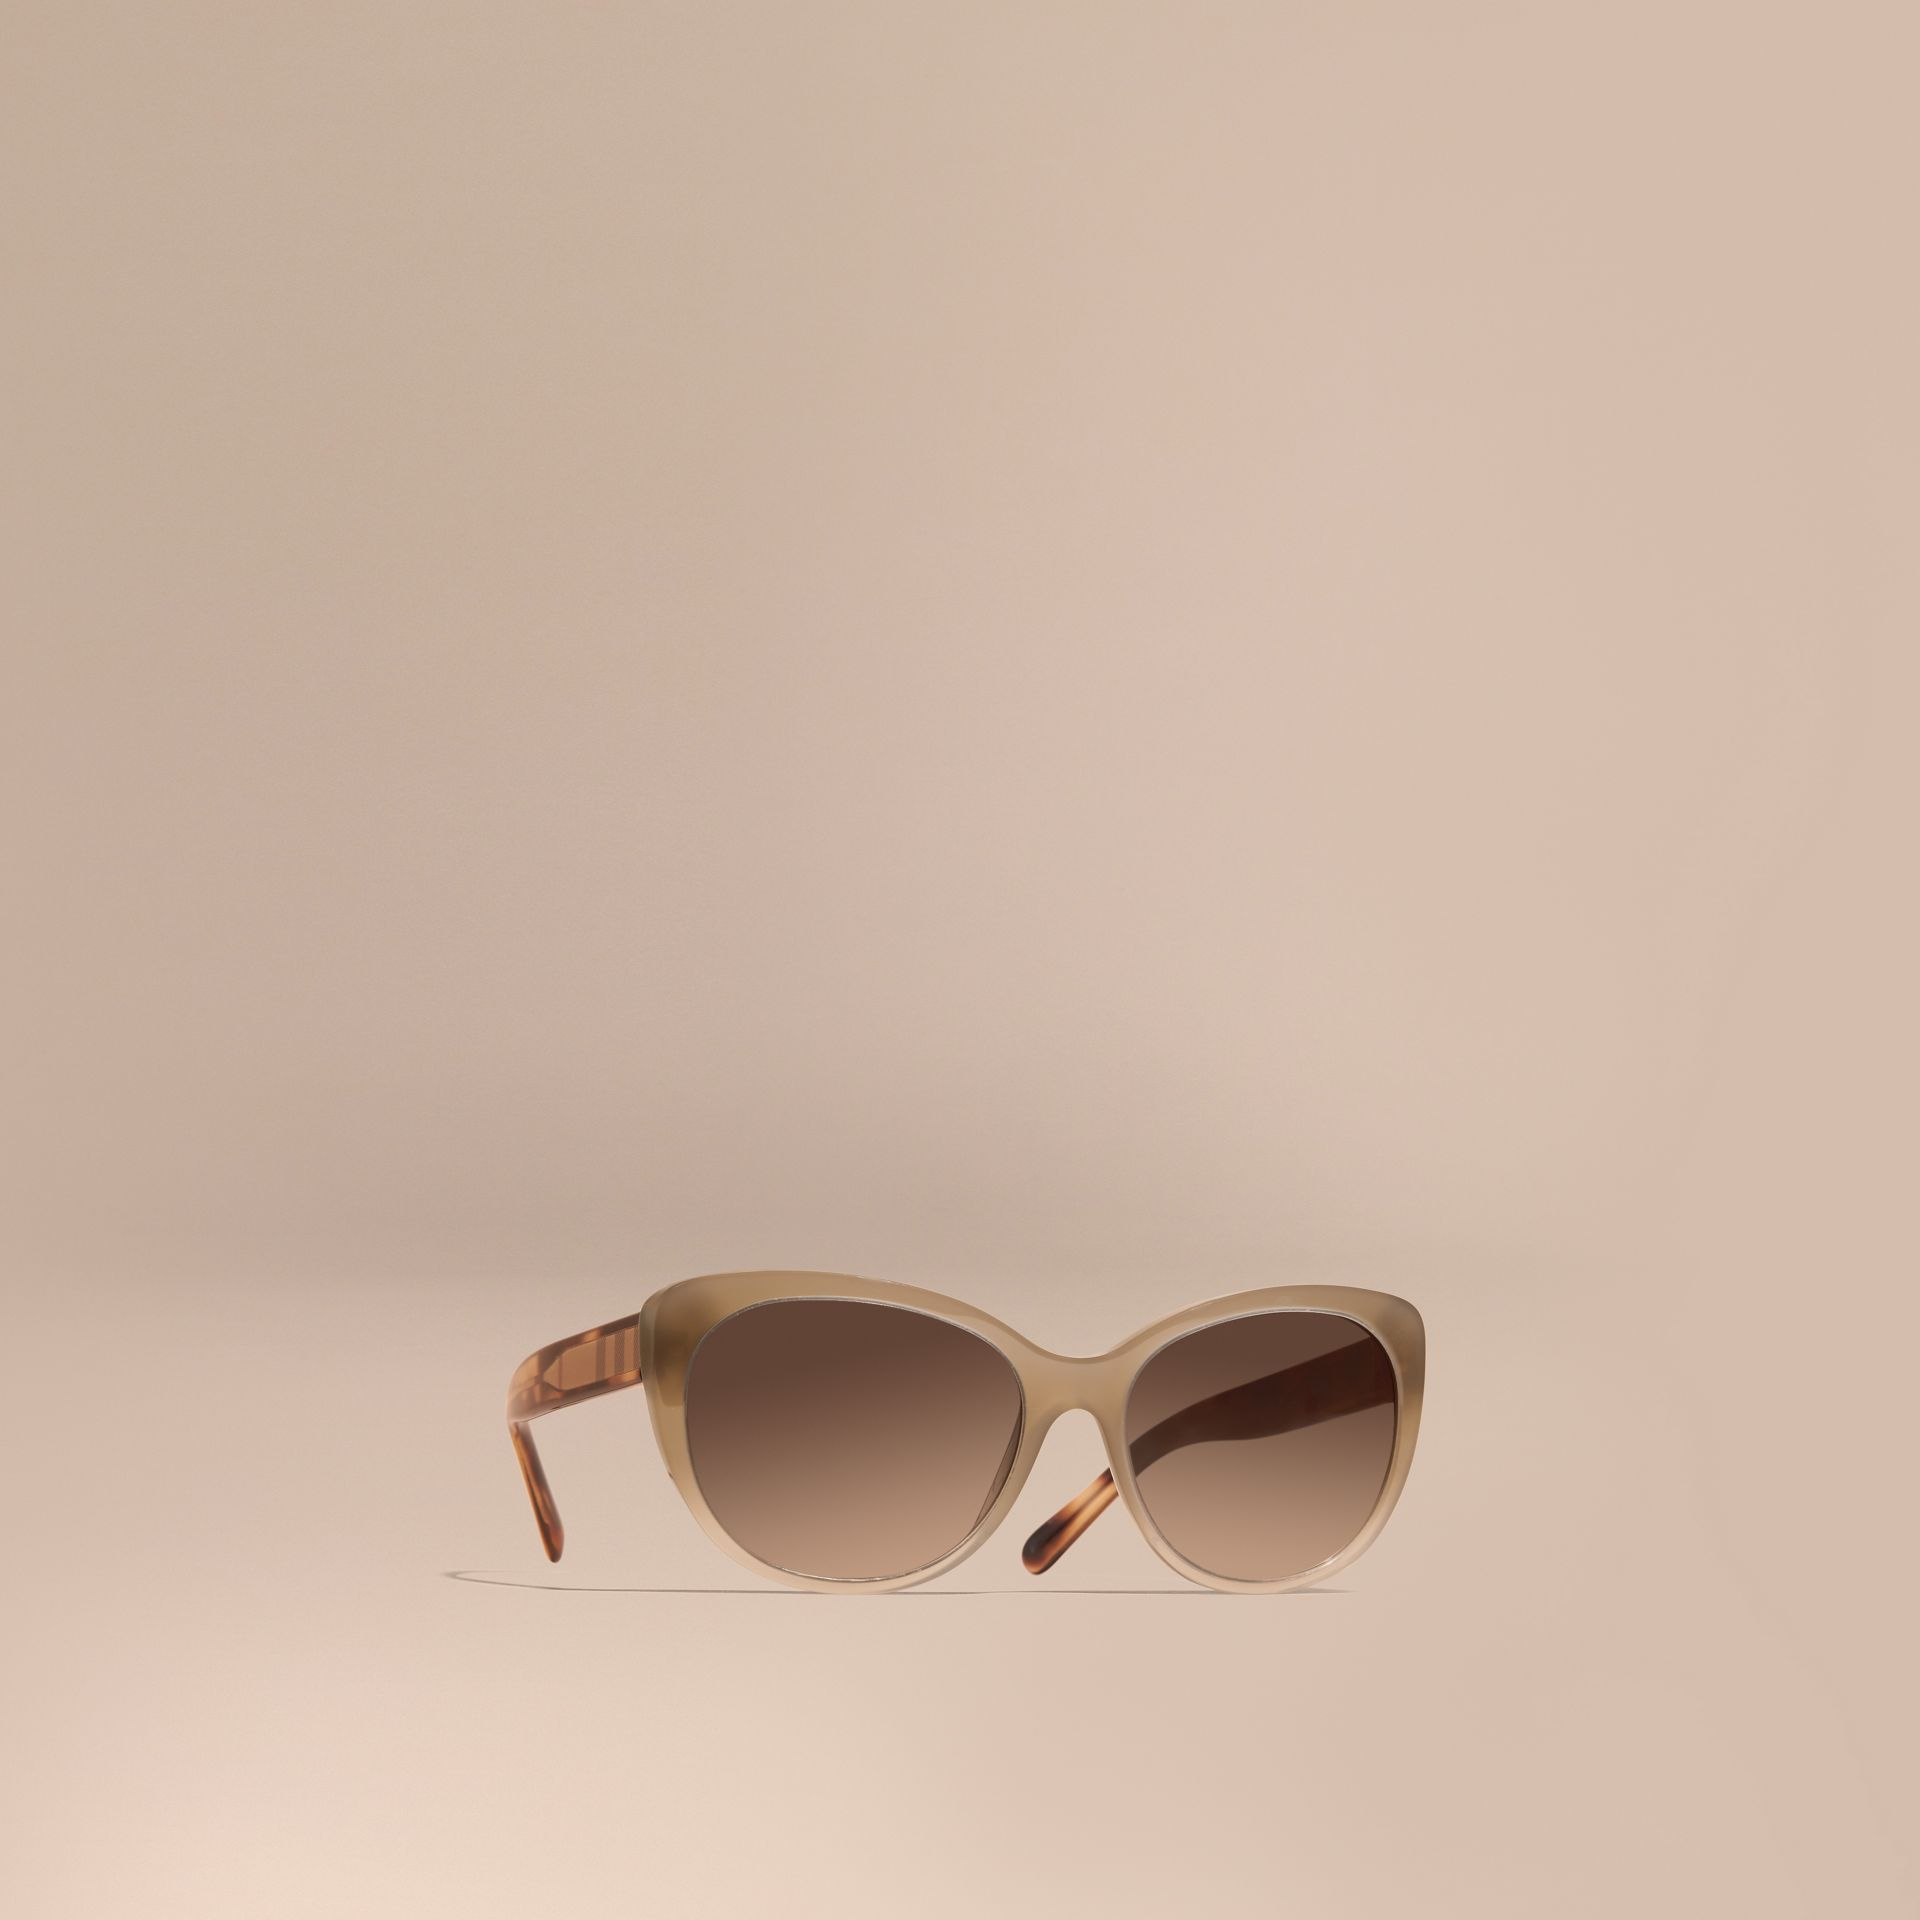 Carnation melange Check Detail Cat-eye Sunglasses Carnation Melange - gallery image 1